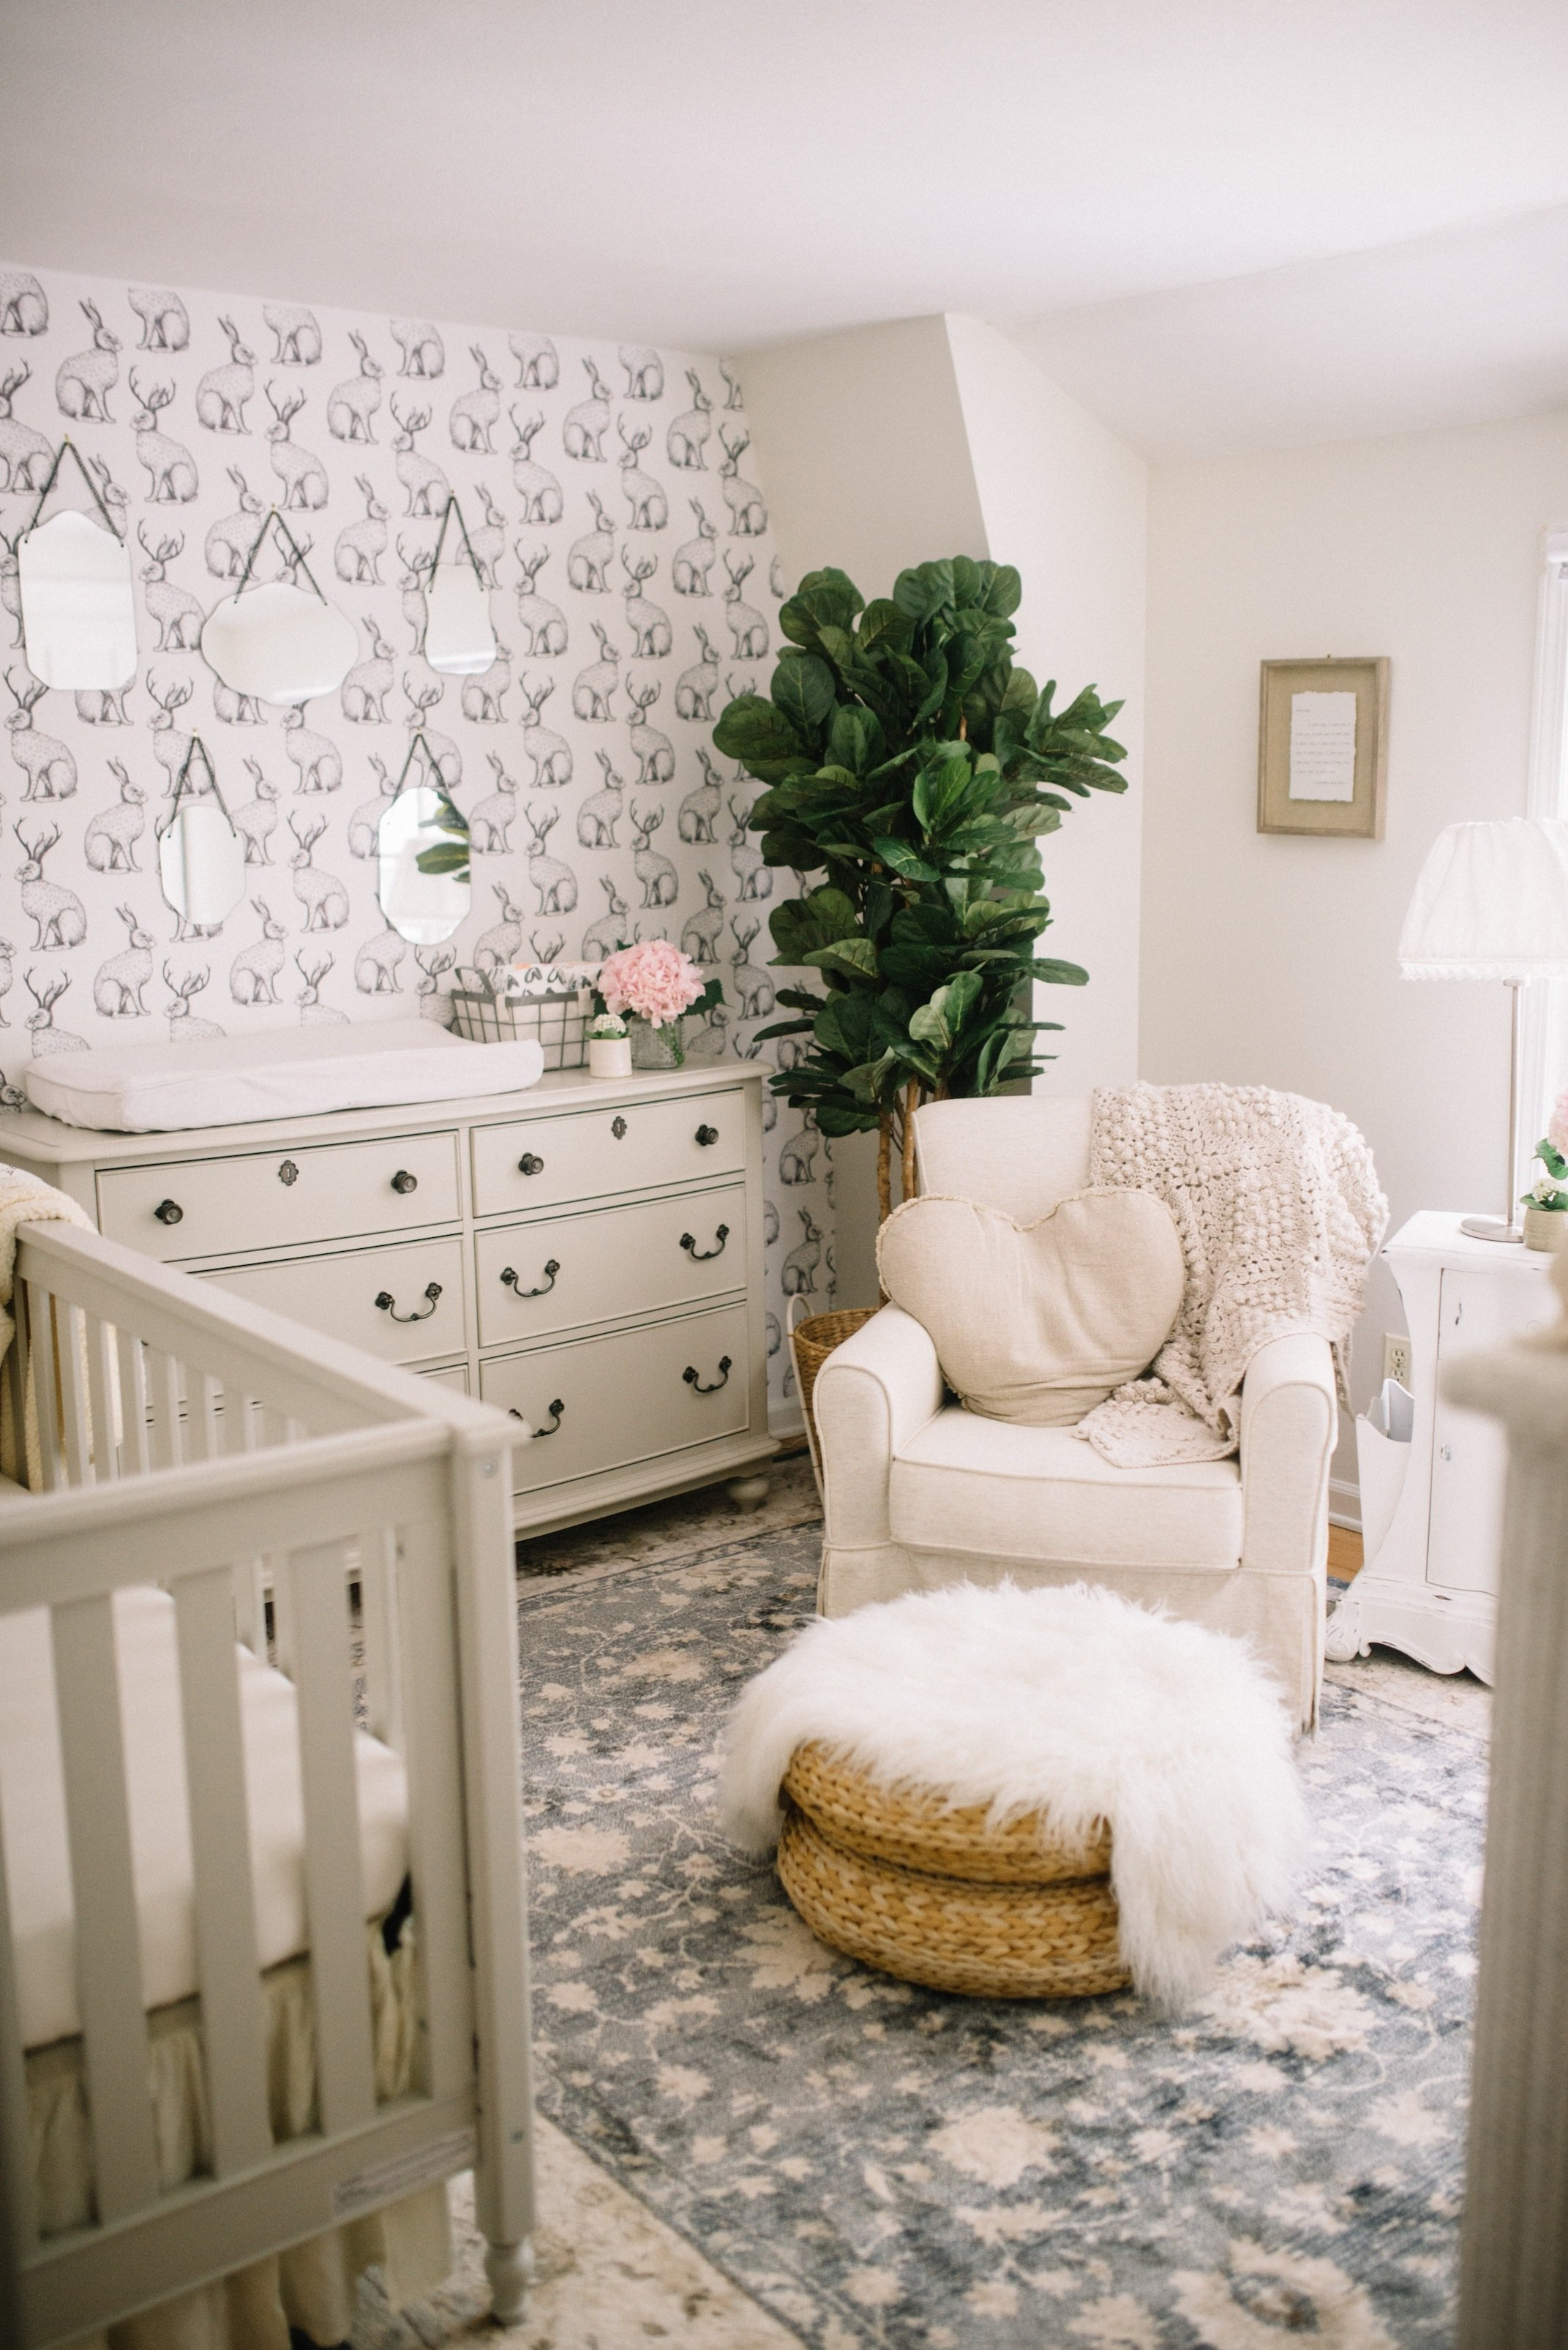 10 Whimsical Kids Room Accent Walls And How to Score the Look 2143x3212